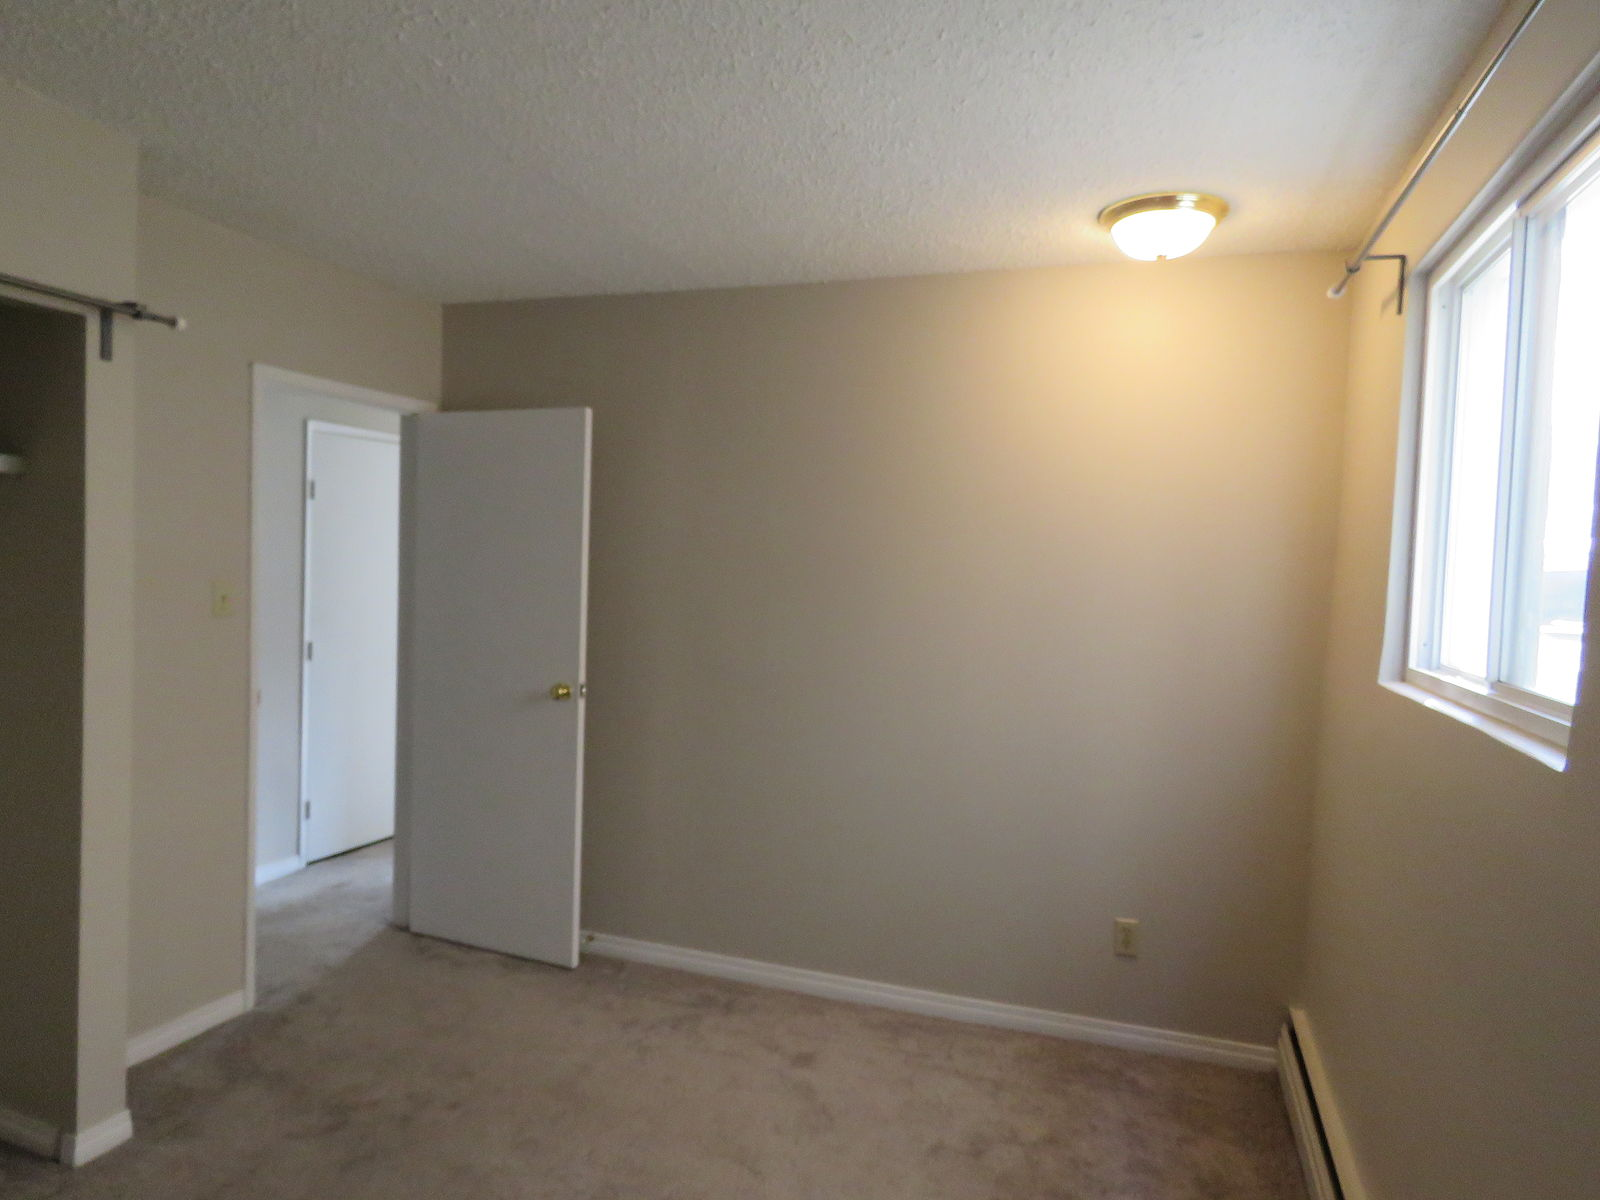 Edmonton Pet Friendly Apartment For Rent Queen Mary Park 1 Bedroom Apartment Close To Id